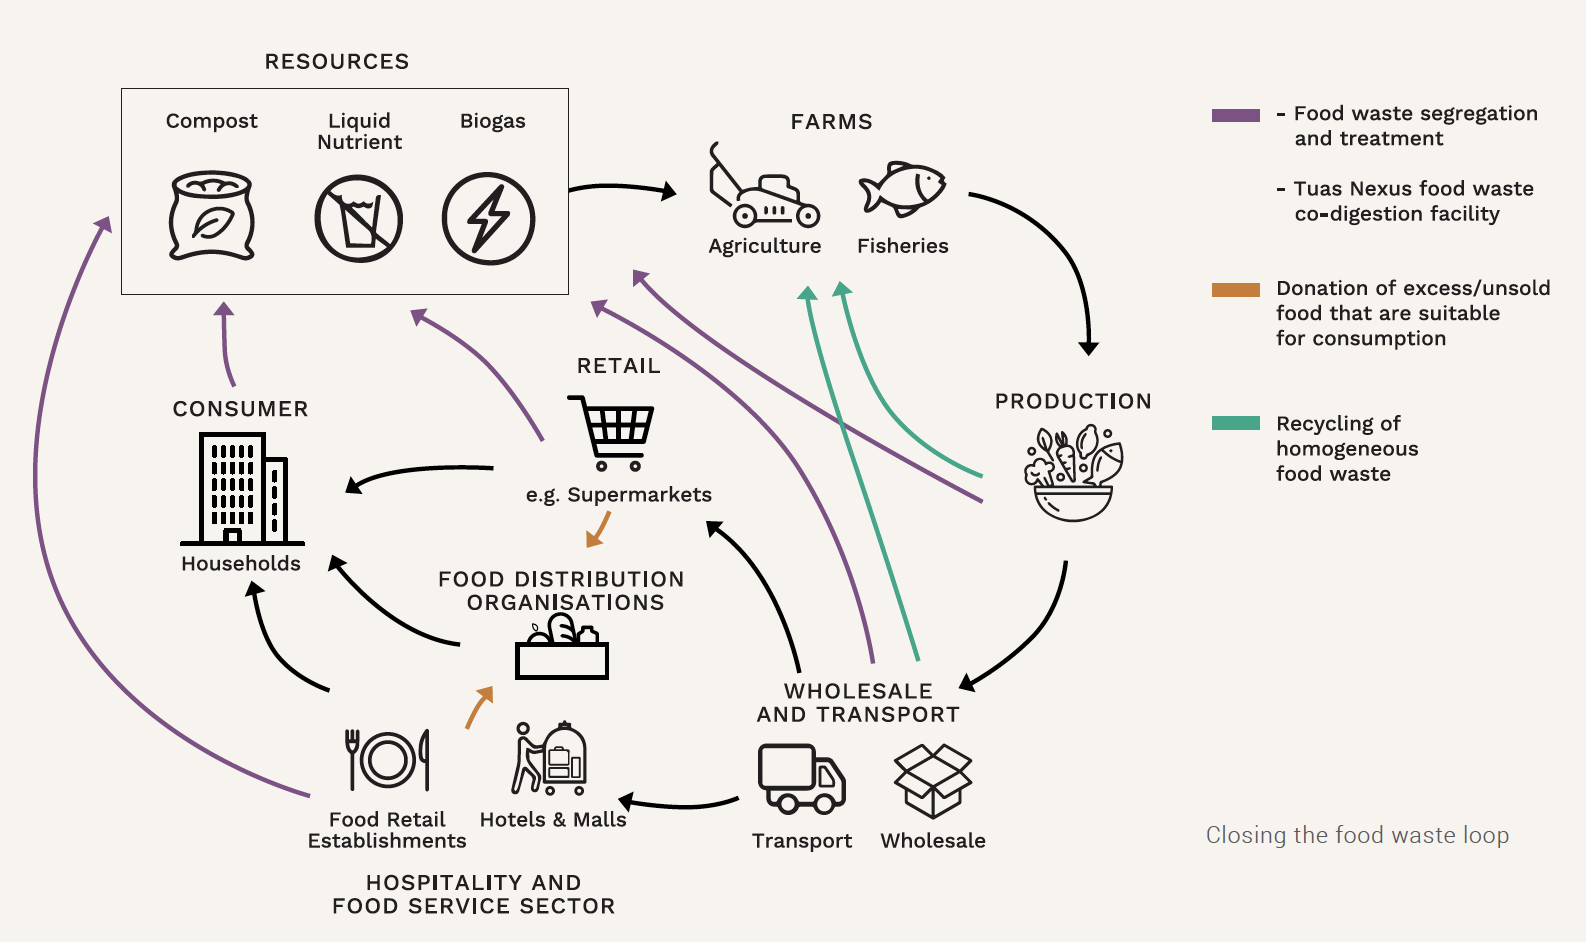 Closing the food waste loop